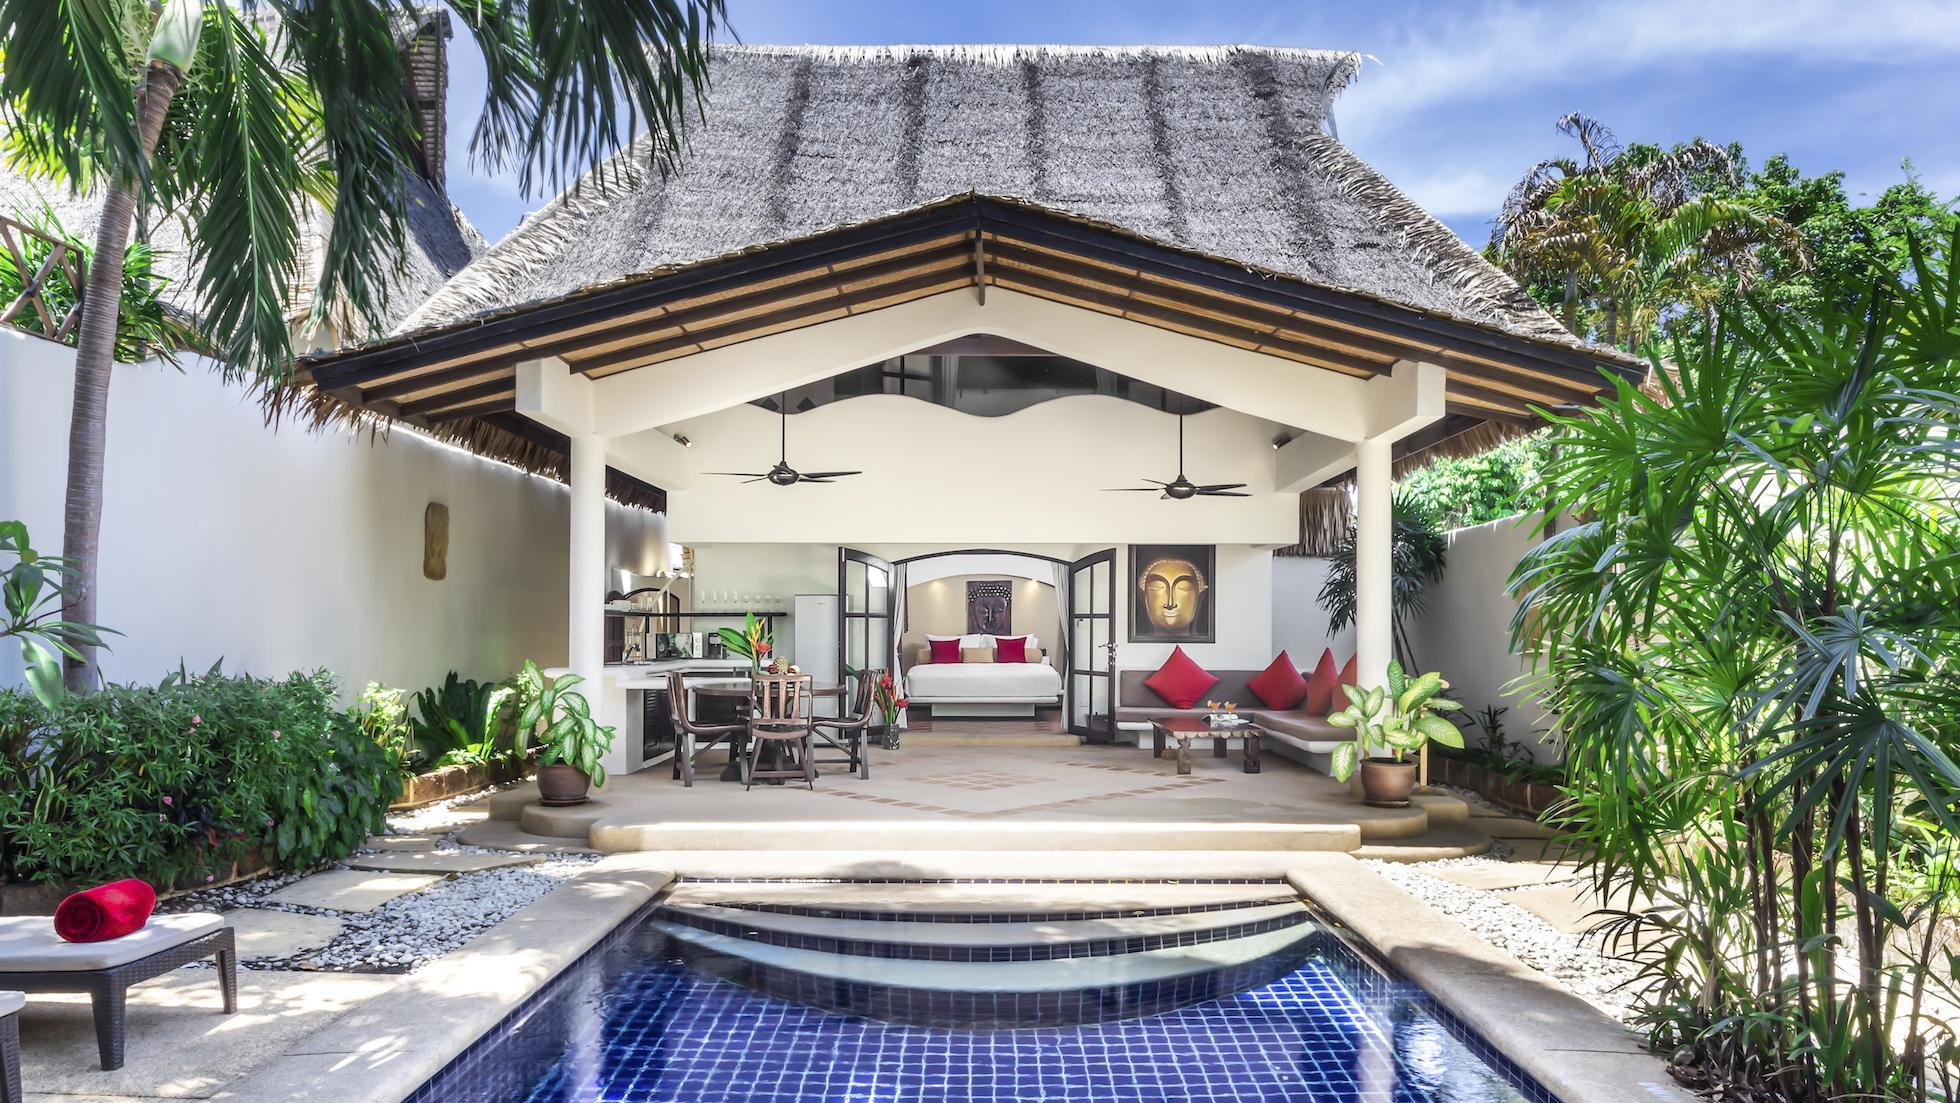 2-Bedroom Tropical Pool Villa